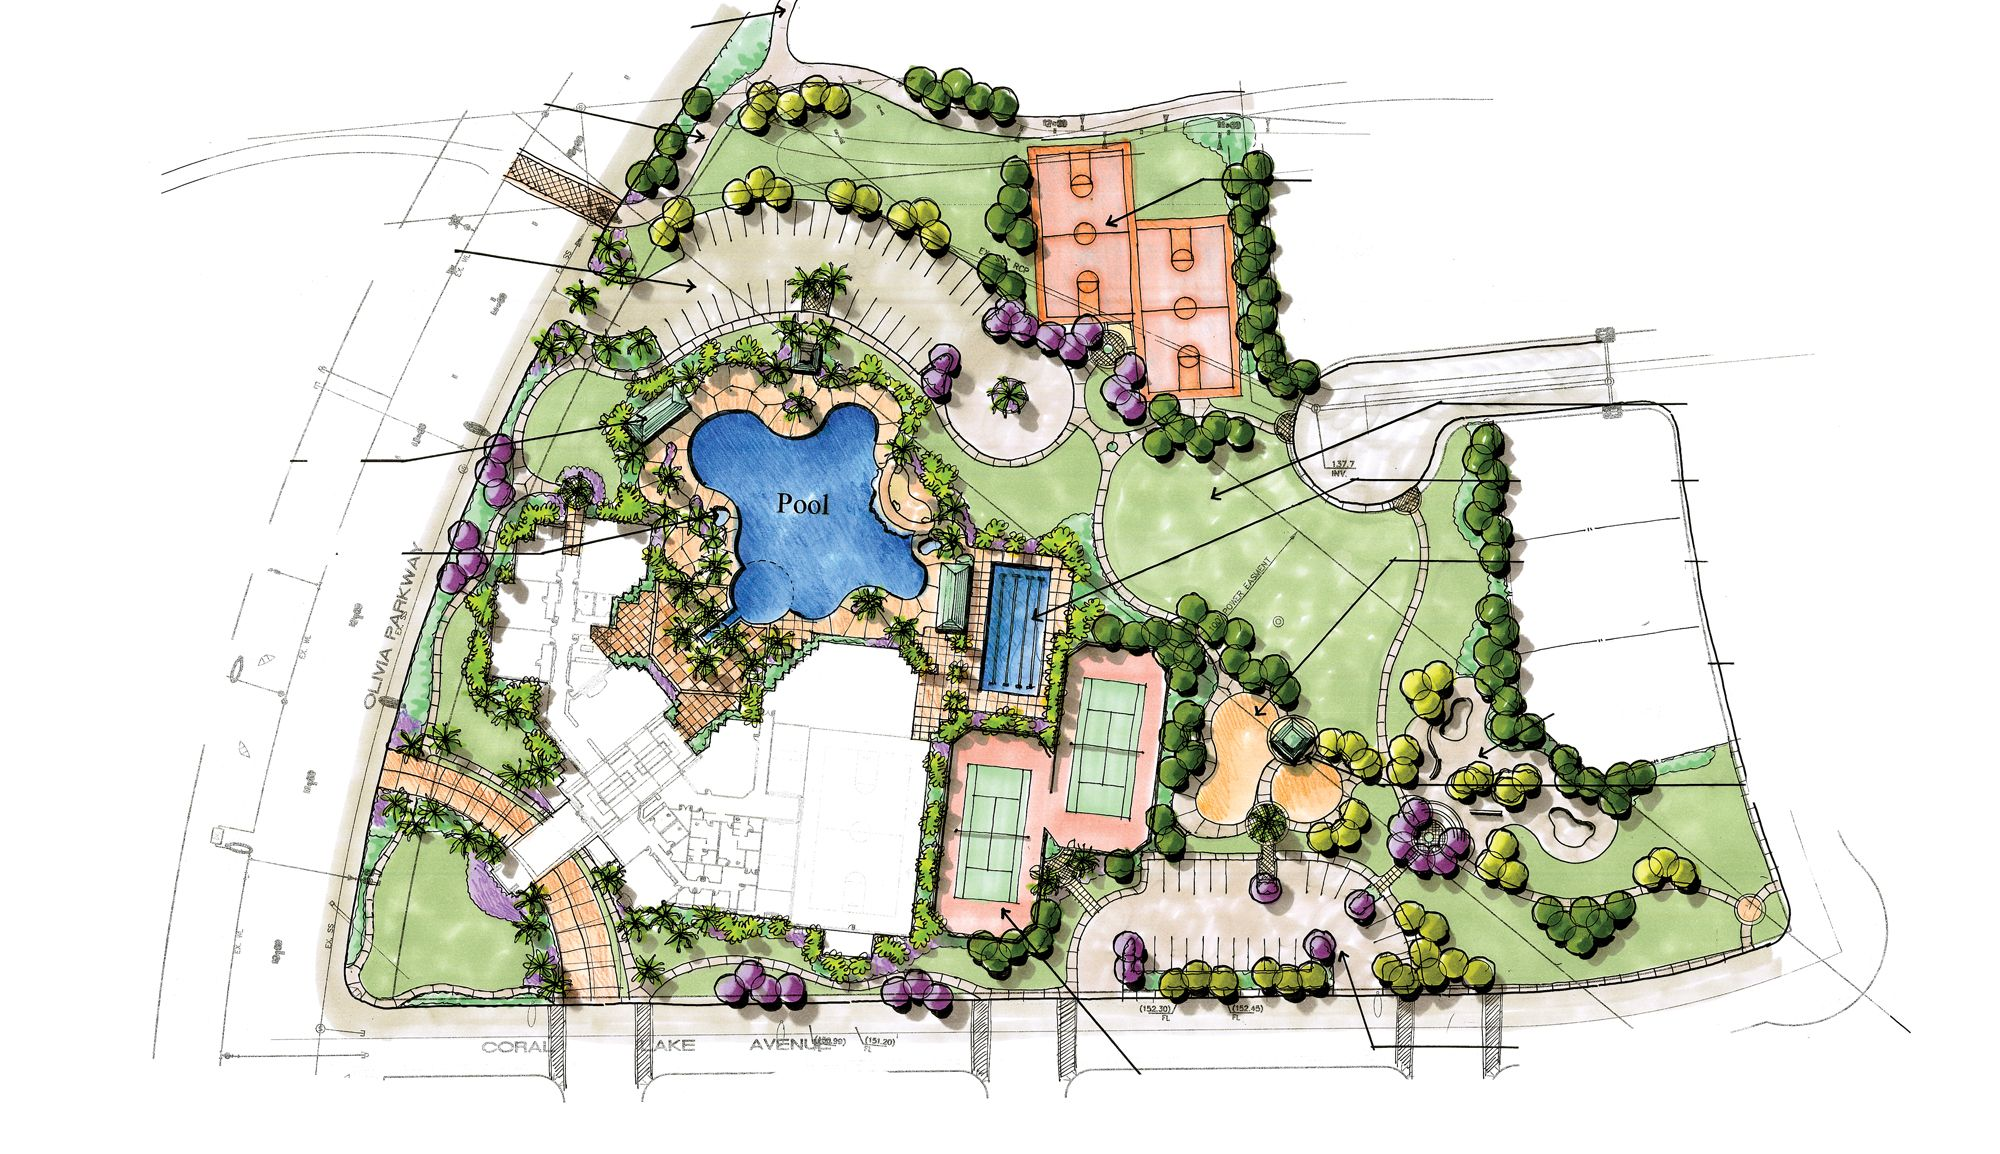 Concept Design For Tuscany Village Recreation Center Recreation Centers Pinterest